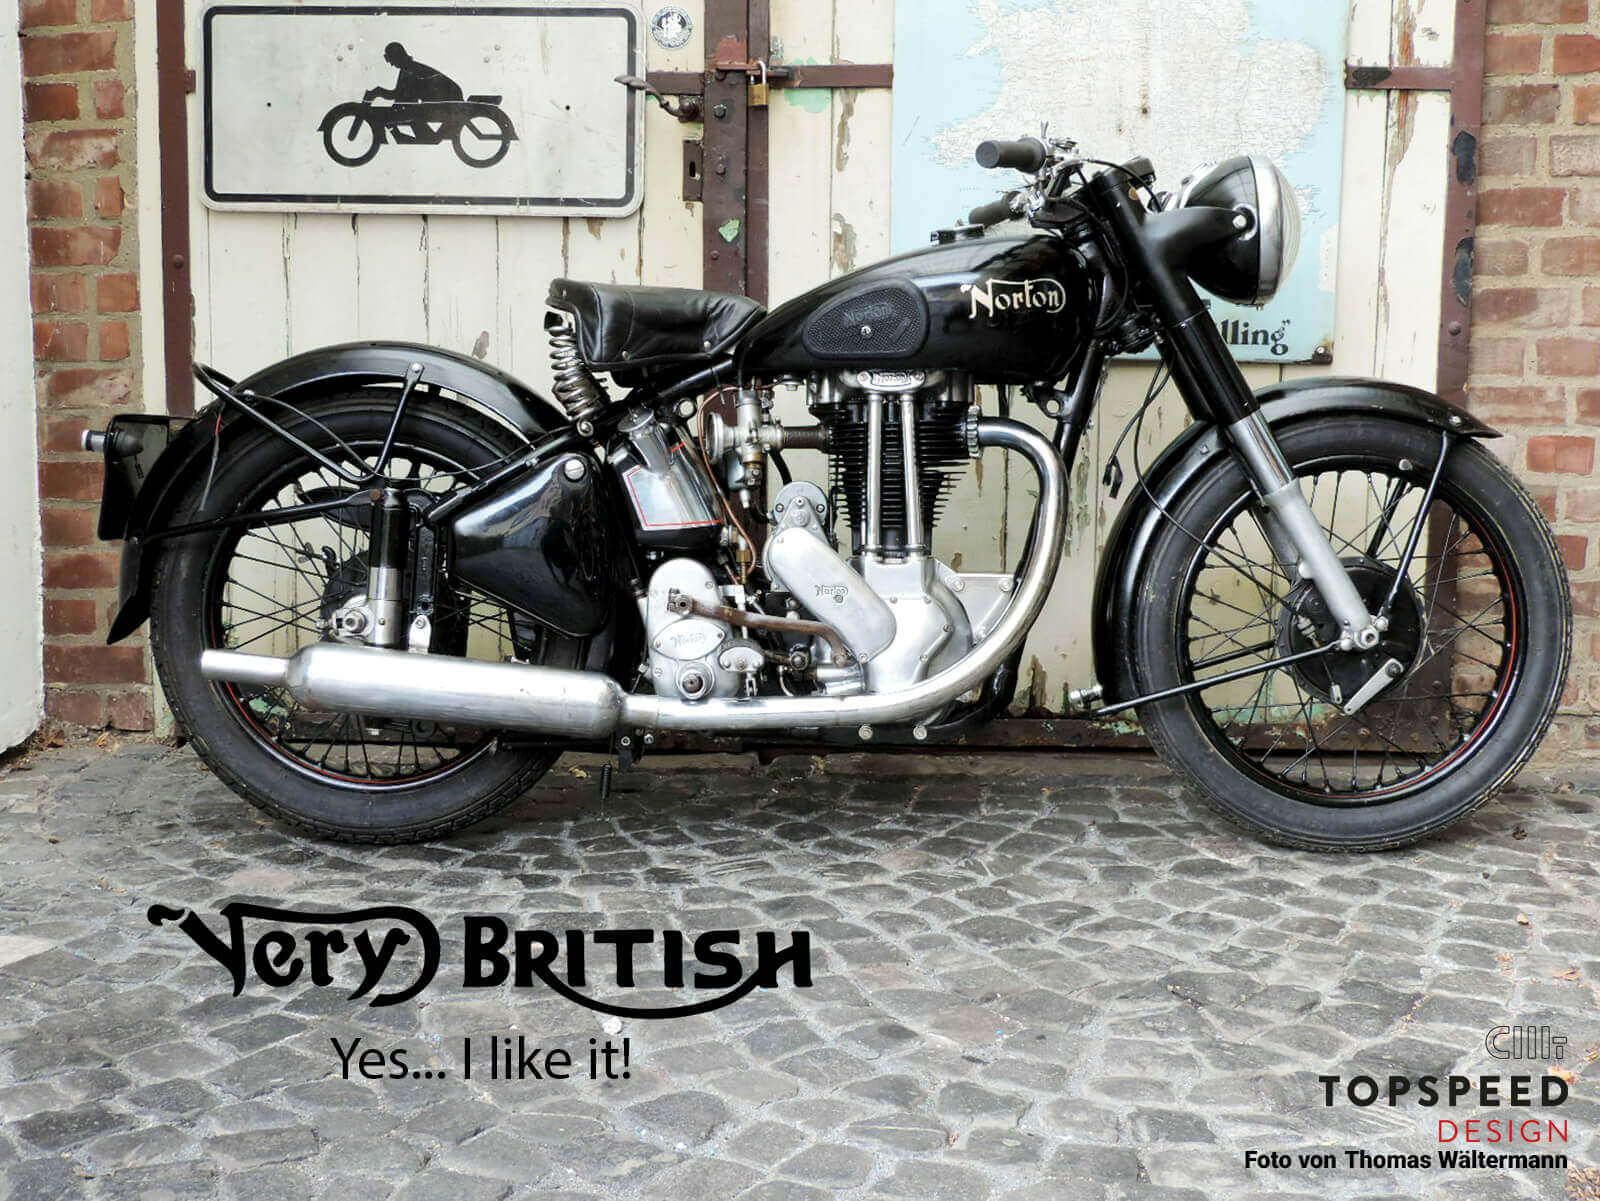 Very British Yes...I like it! | Topspeed-Design by Bernhard Schmidt